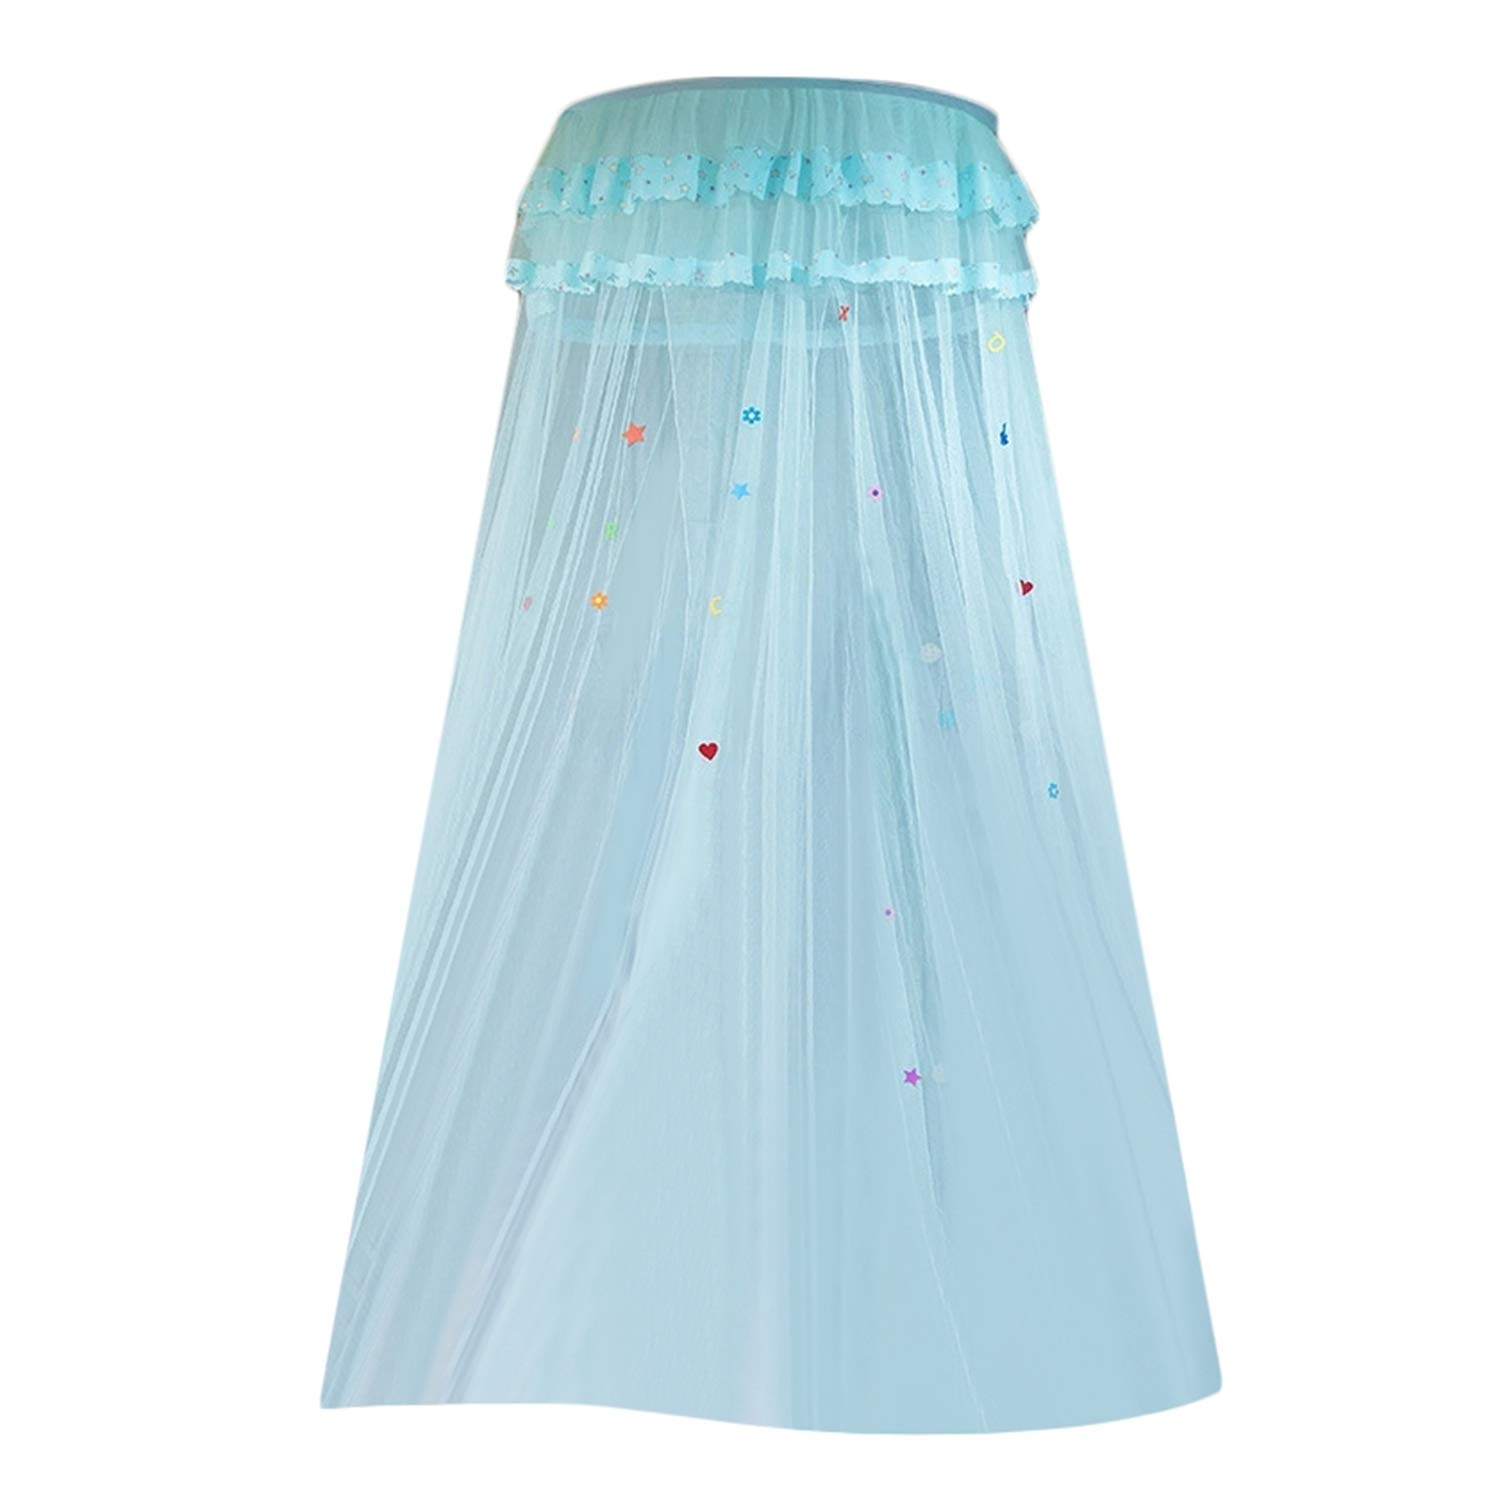 Mosquito Net - Children Elegant Tulle Bed Dome Netting Canopy Circular Round Bedding Mosquito Net - Patio Curtain Attach Screen Hammocks Over Universal Pink Military Long Lights Stroller Gar